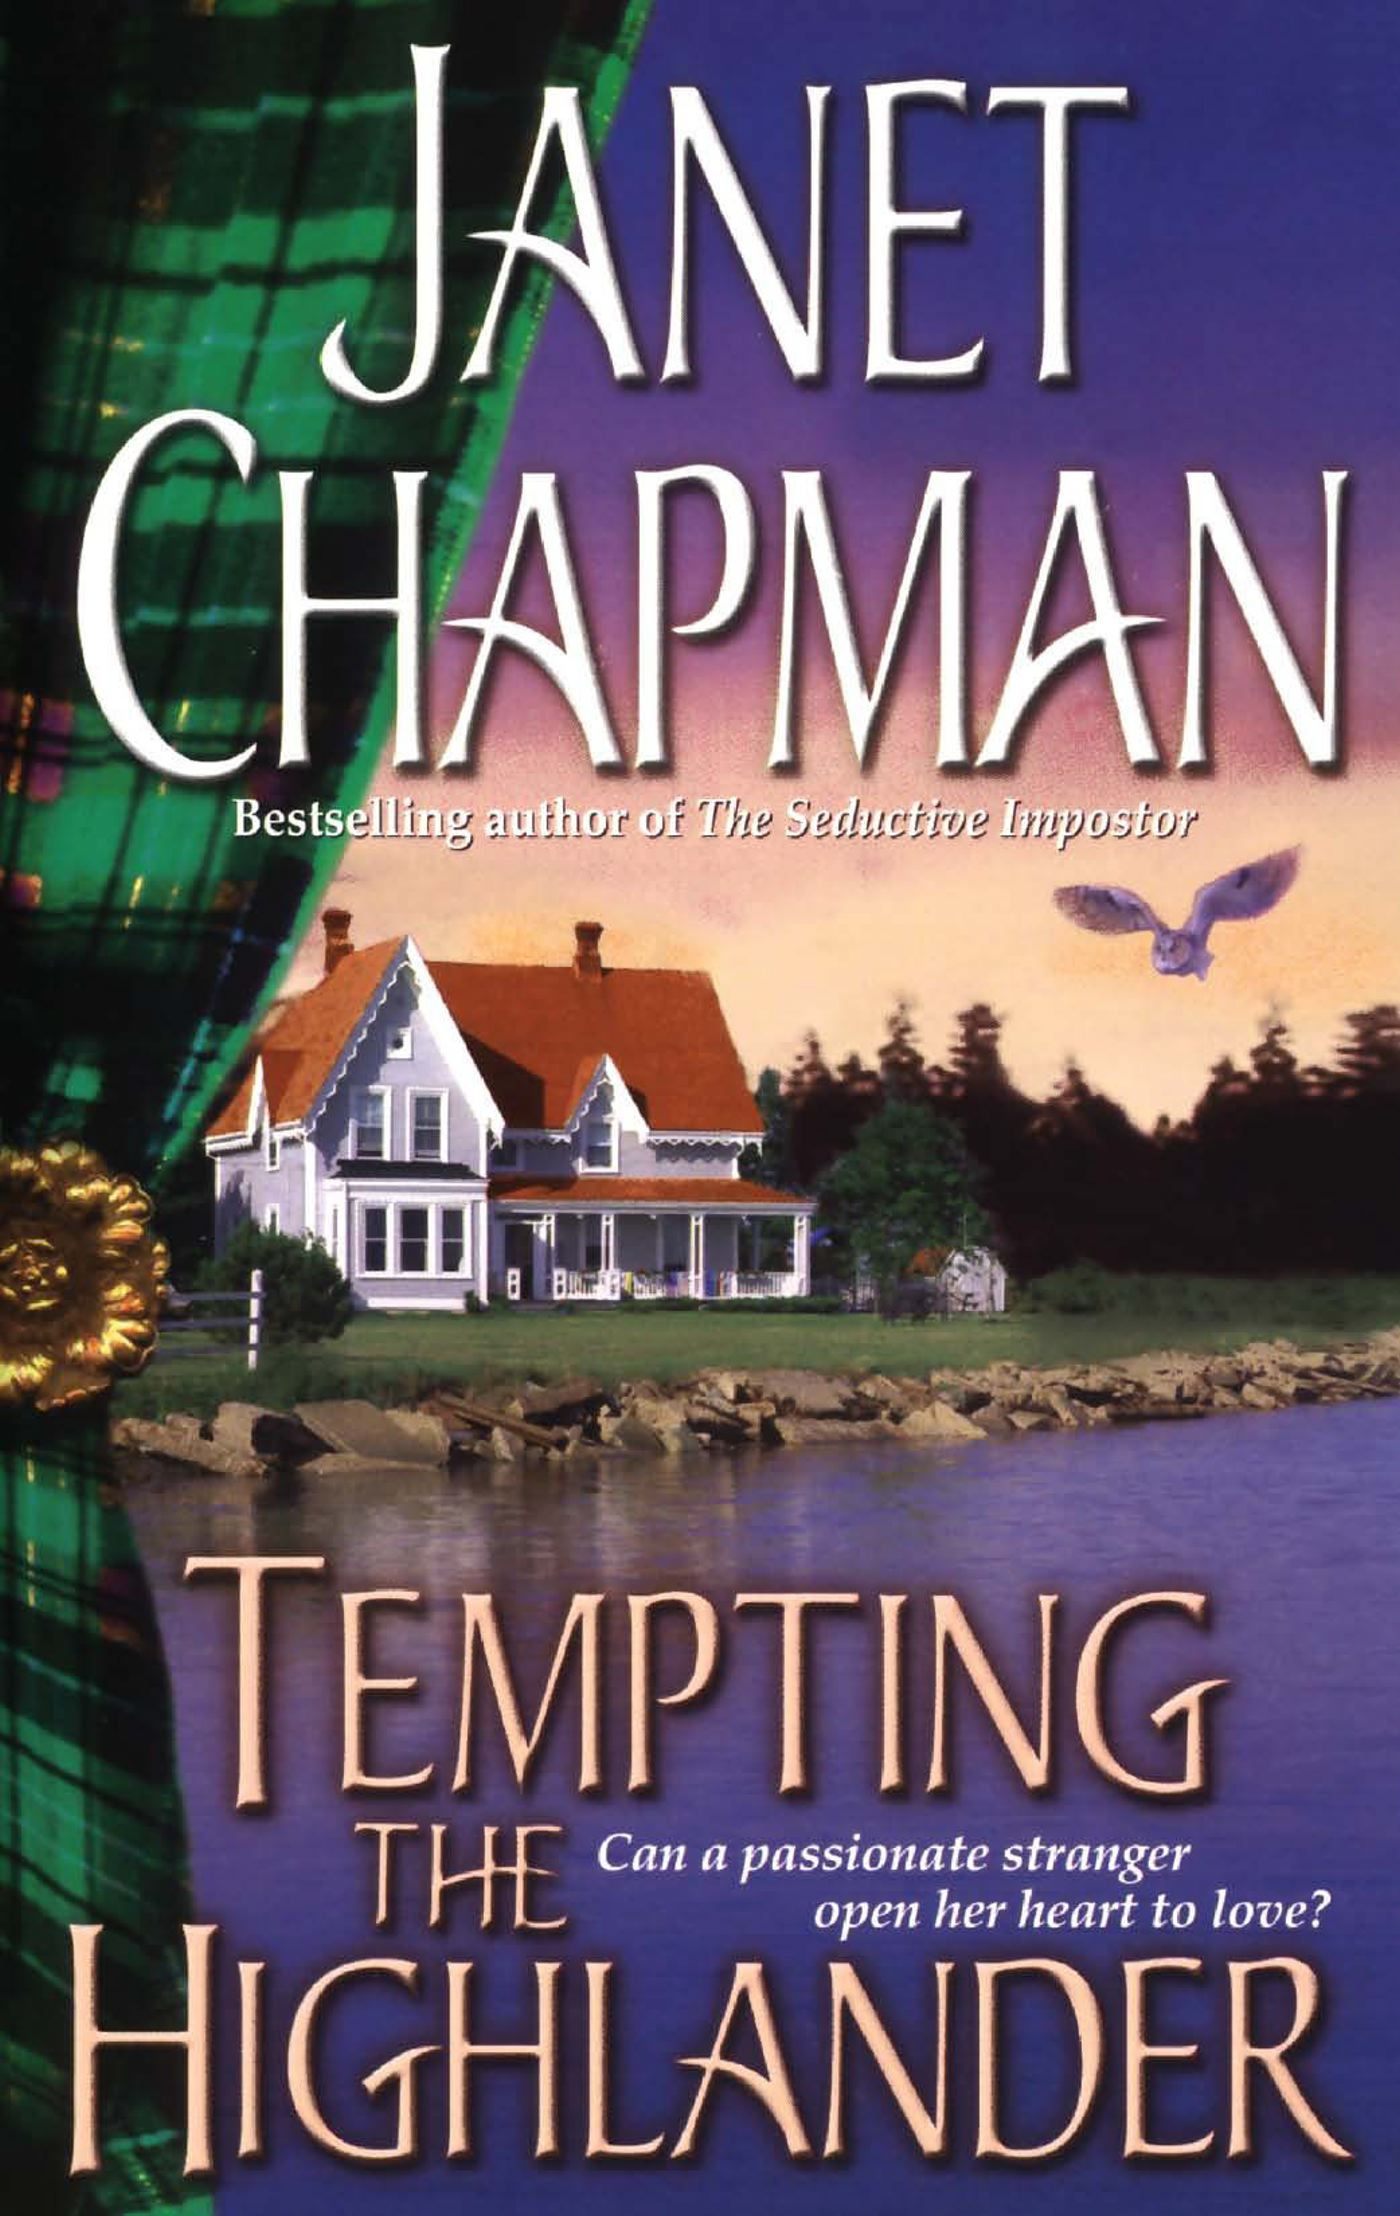 Tempting the highlander ebook by janet chapman official publisher cvr9780743499910 9780743499910 hr tempting the highlander fandeluxe Choice Image